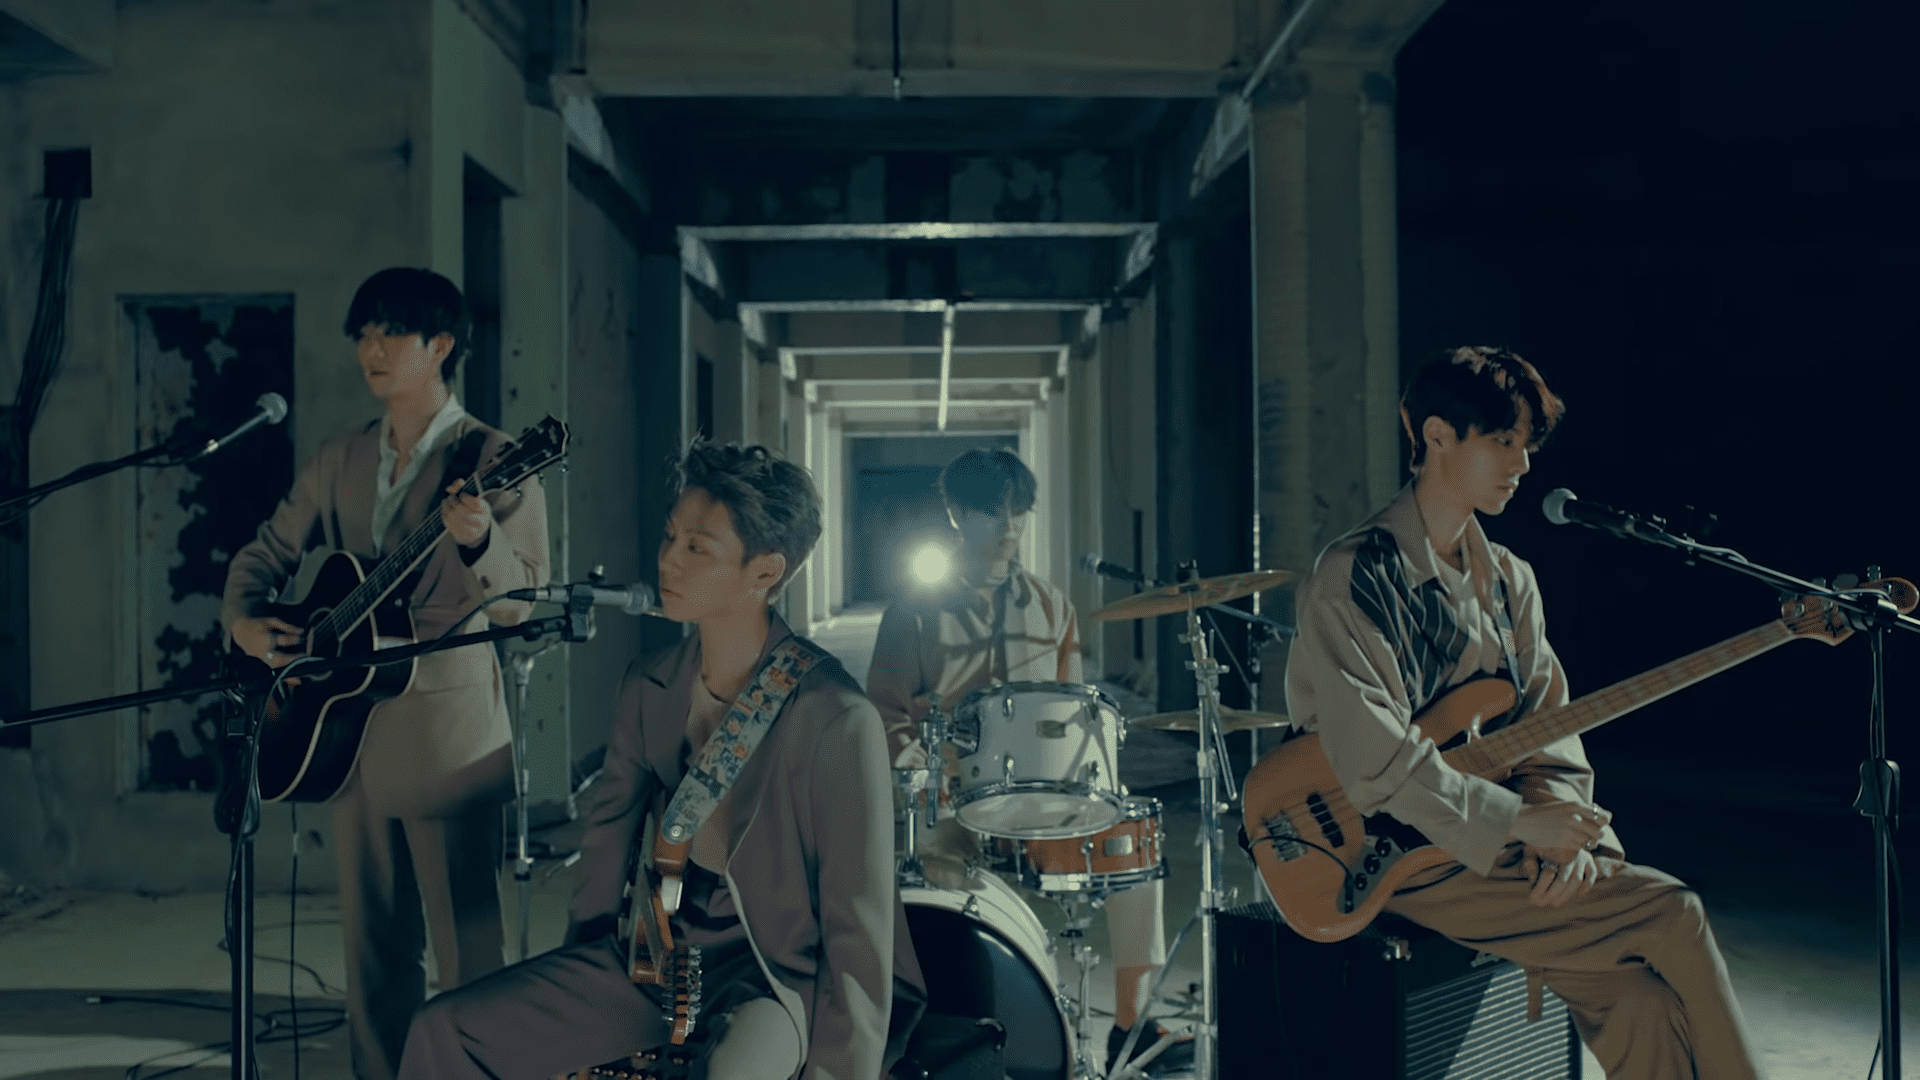 """WATCH: The Rose Makes Sentimental Comeback With New """"She's In The Rain"""" MV"""